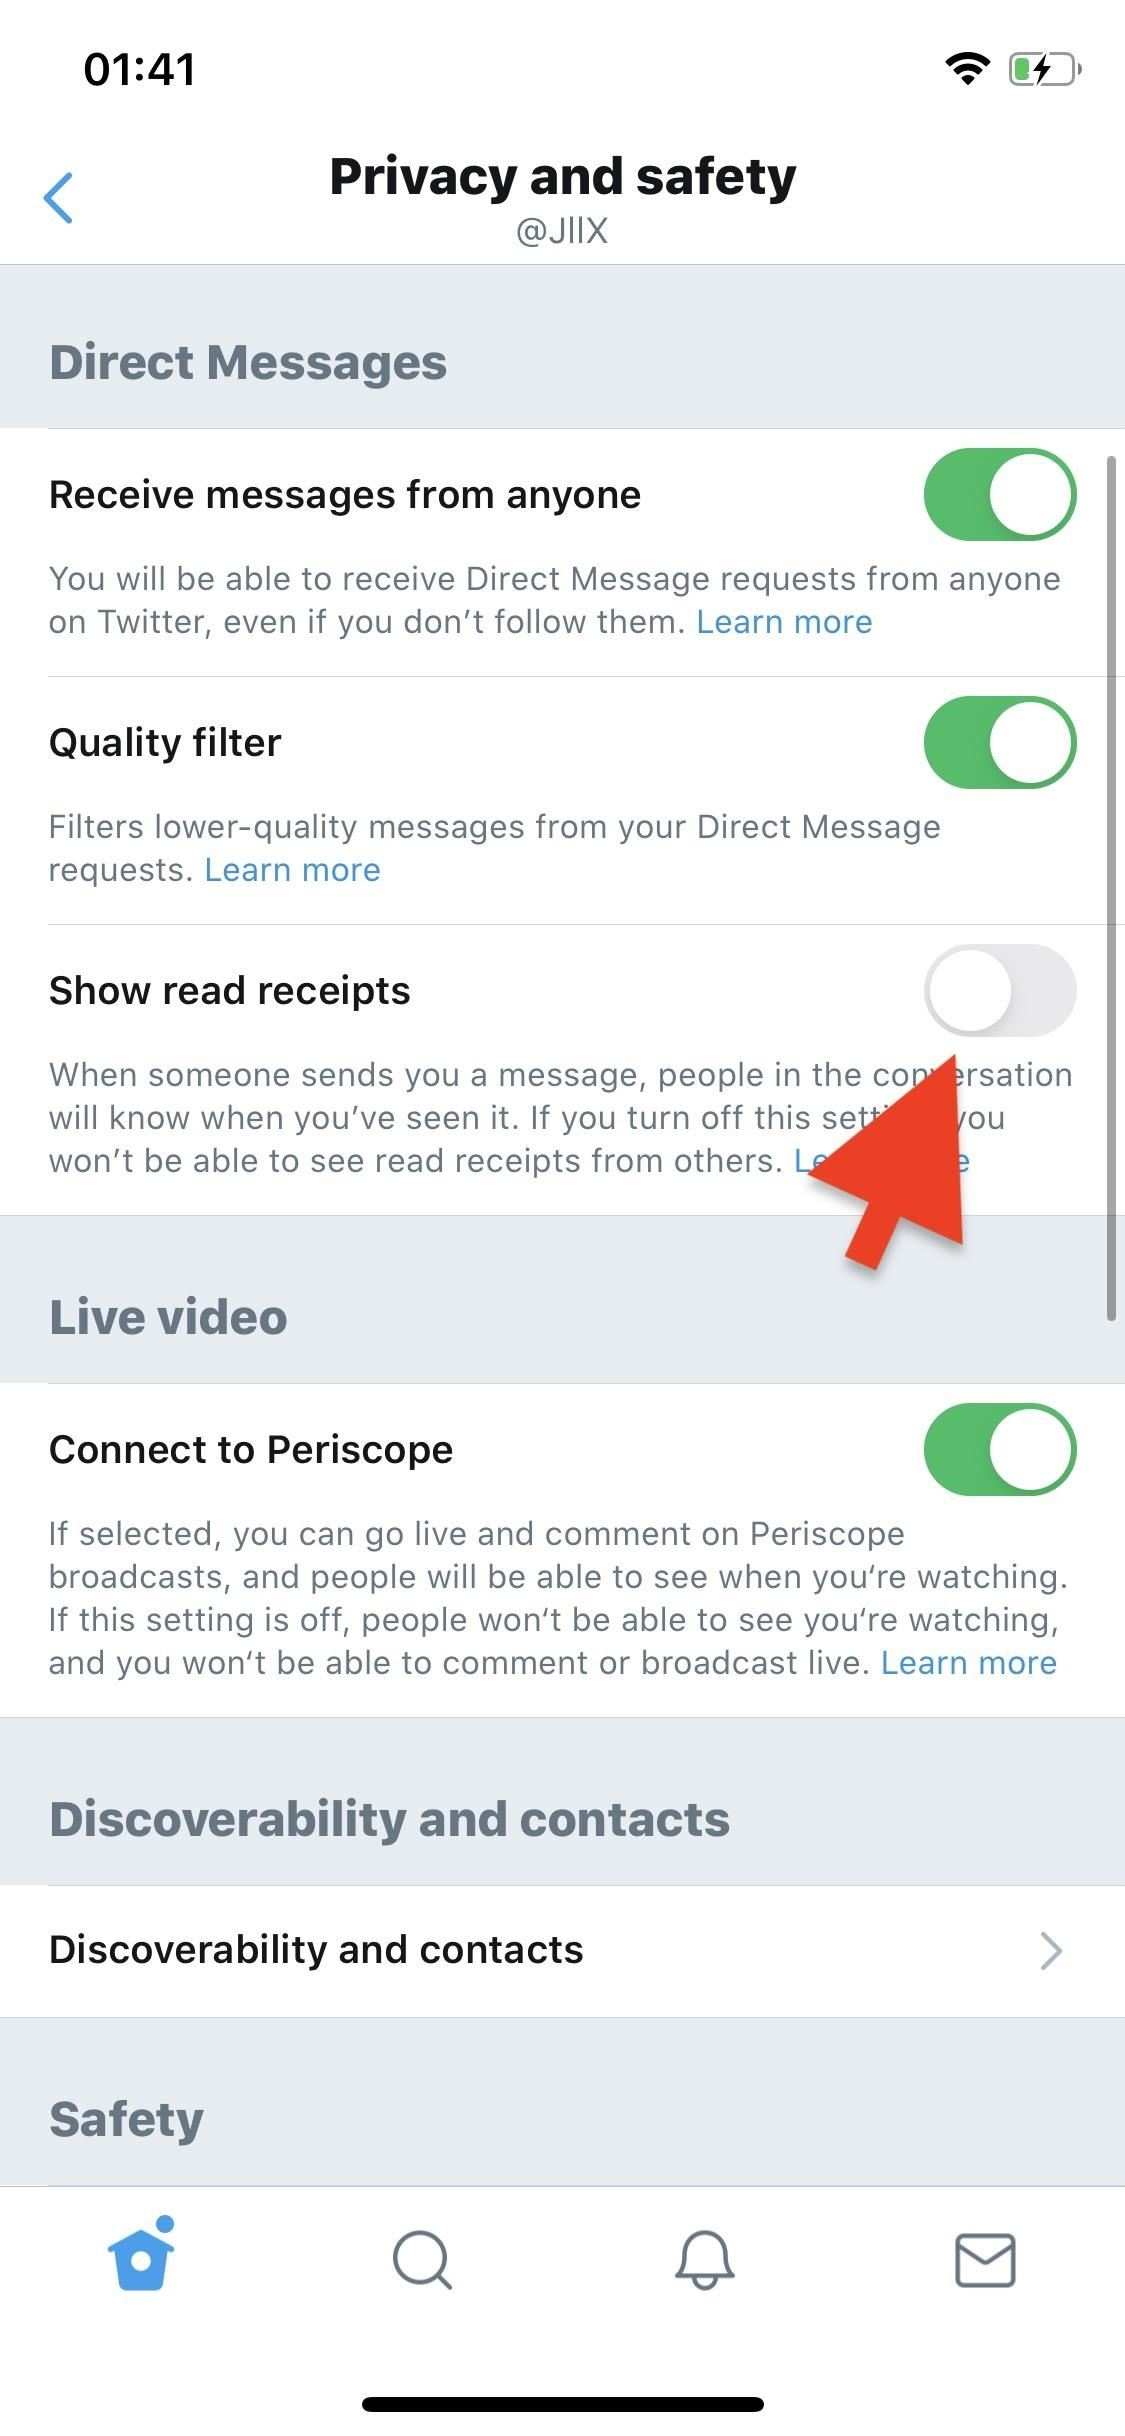 7 tips to improve your privacy and security on Twitter